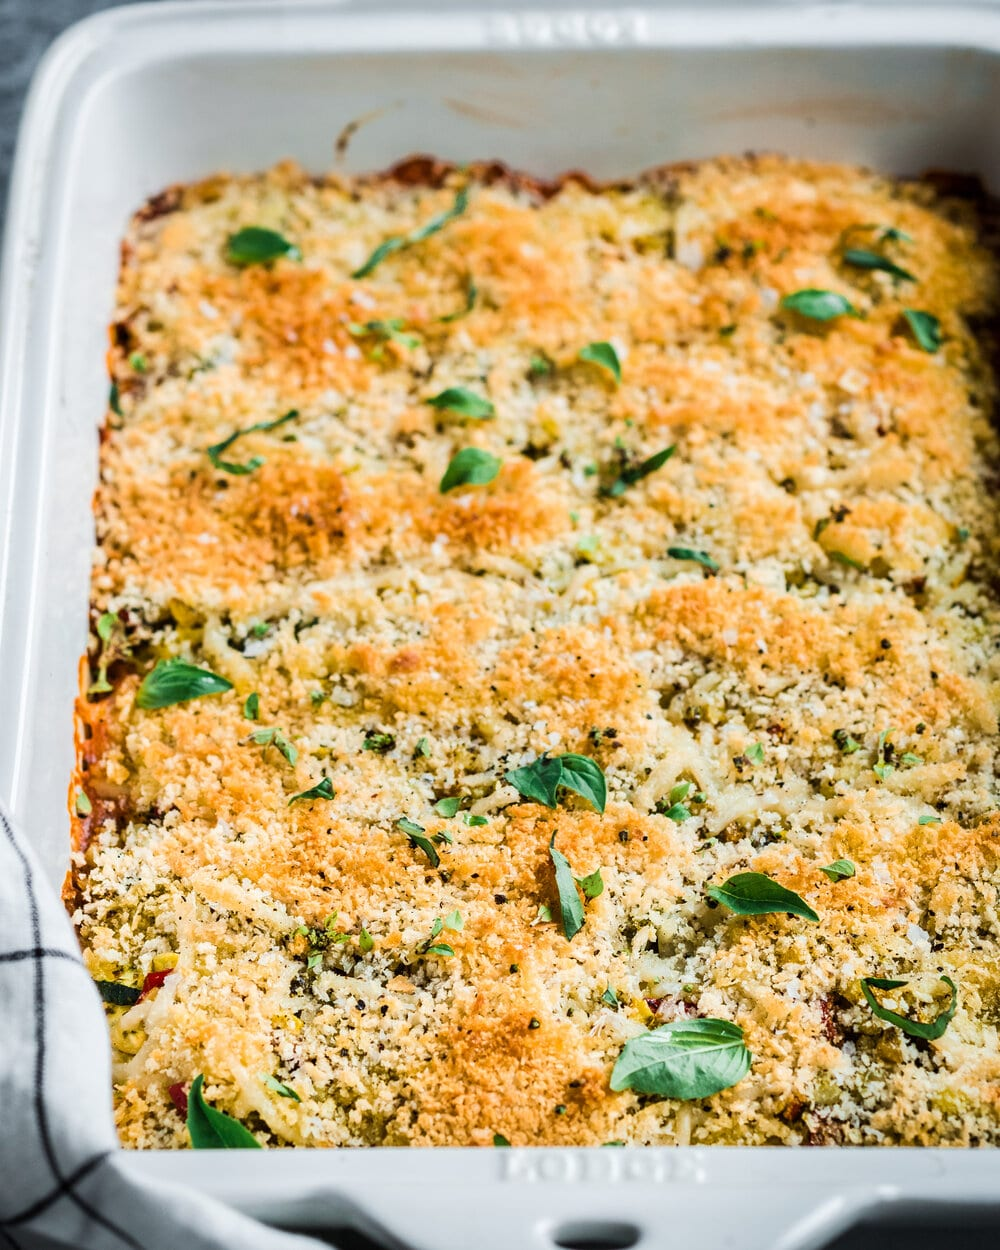 Crispy Zucchini and Corn Casserole